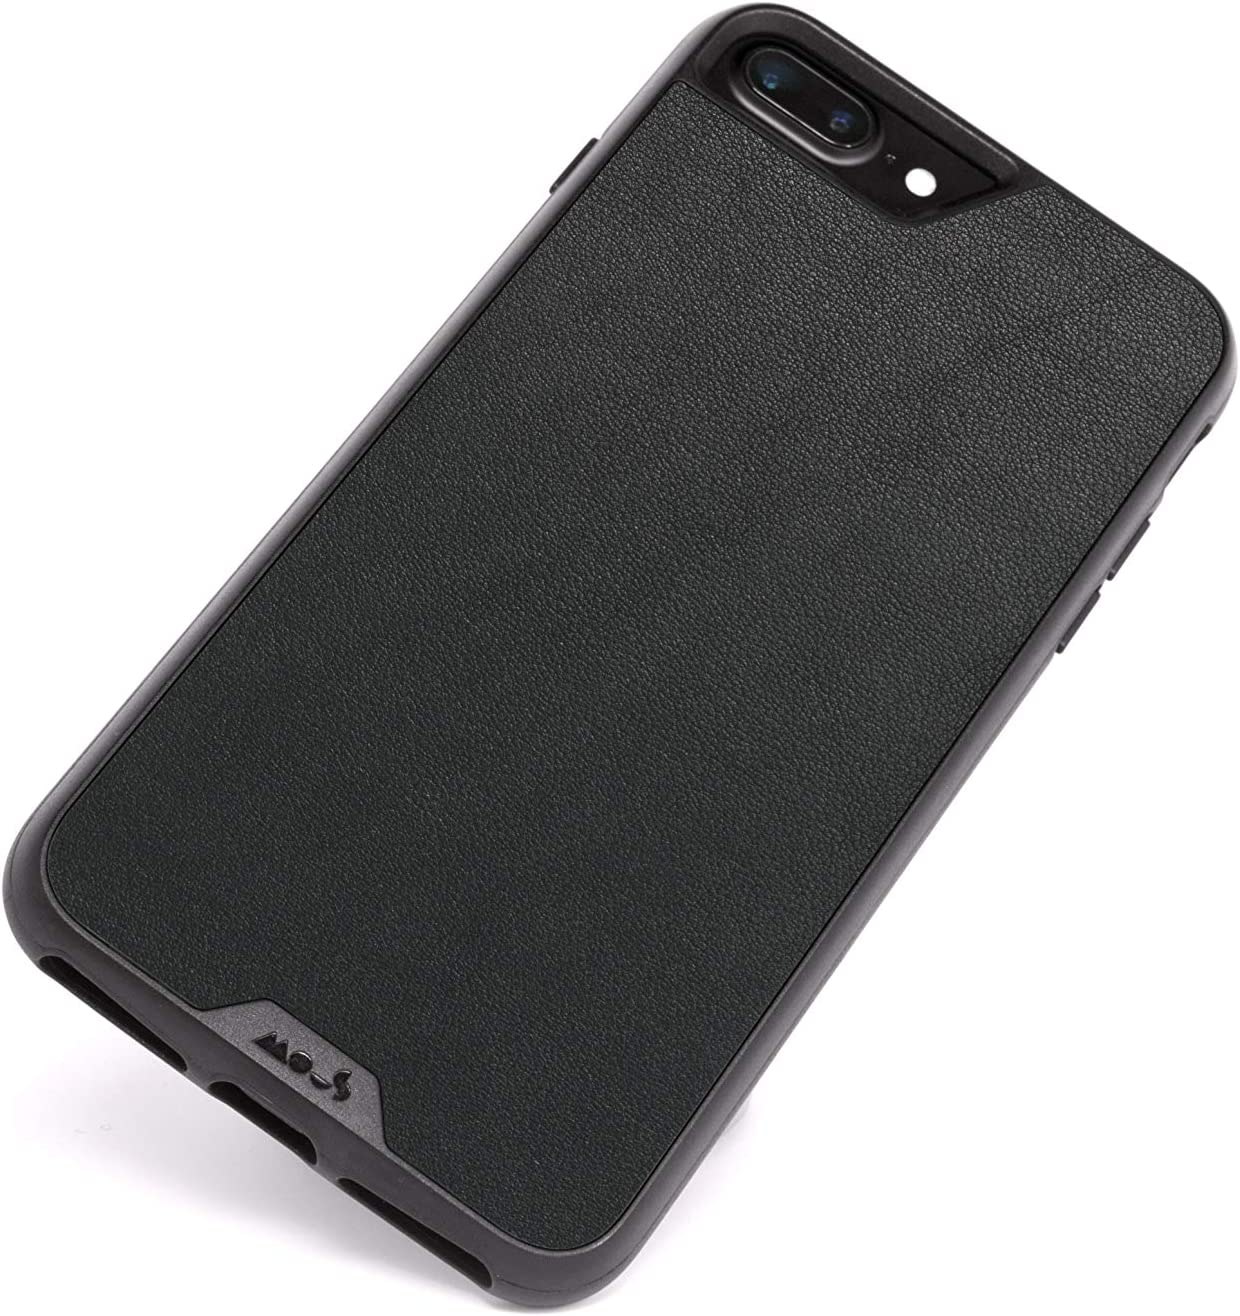 Mous - Protective Case for iPhone 8+/7+/6S+/6+ Plus - Limitless 2.0 - Black Leather - Screen Protector Included